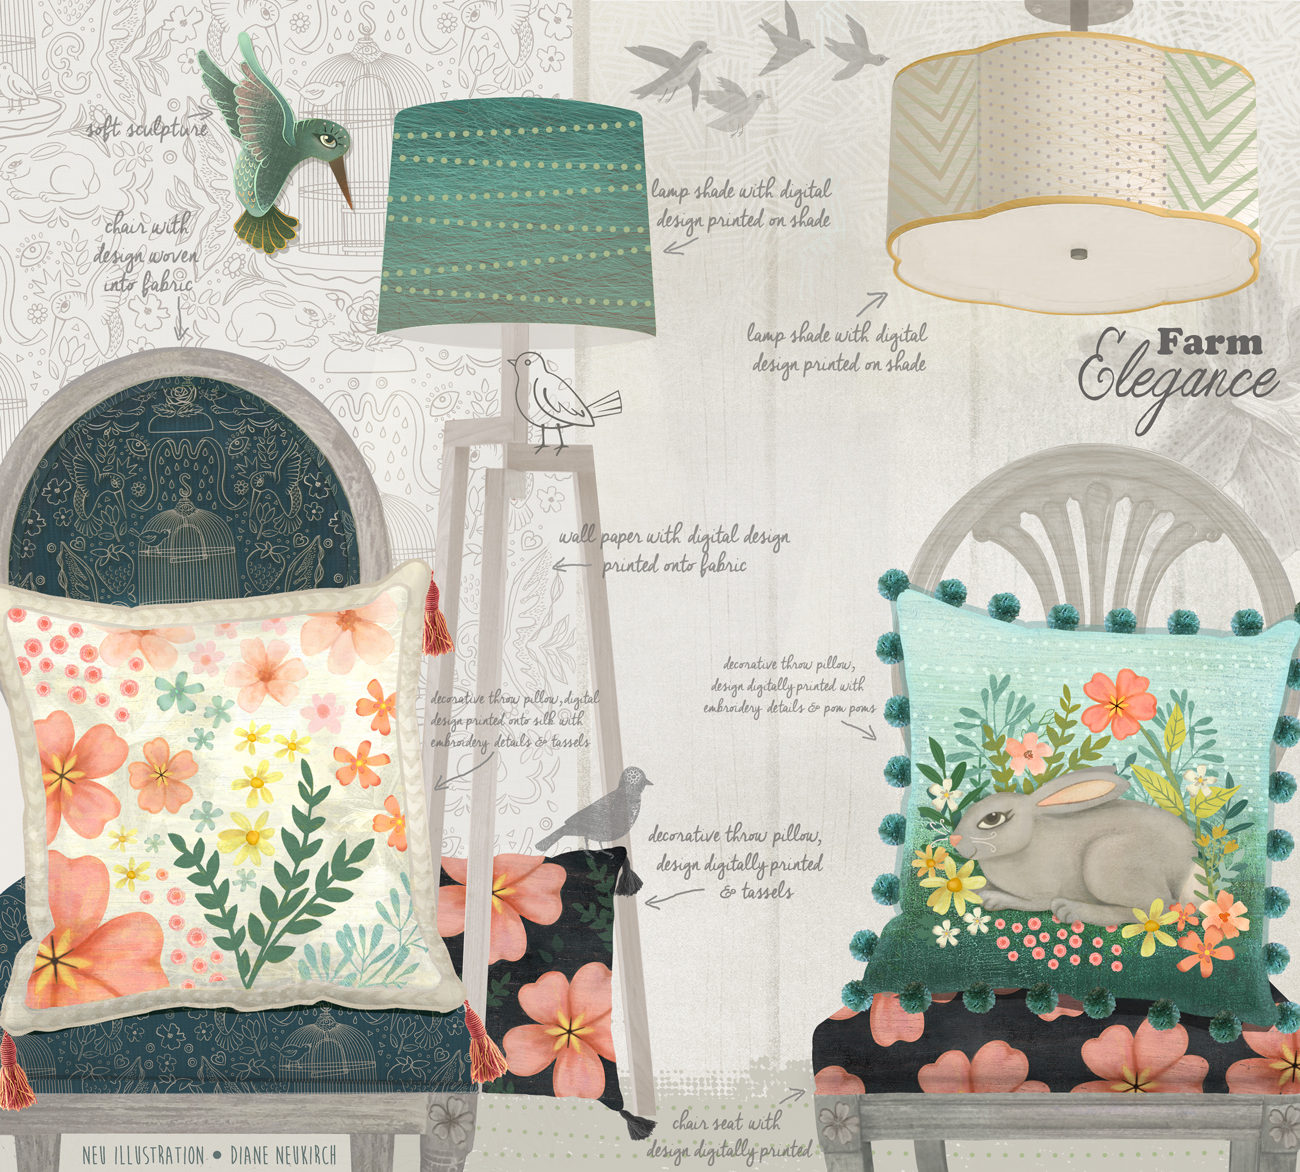 Neu illustration mats spring home decor course - Home decoration courses decoration ...